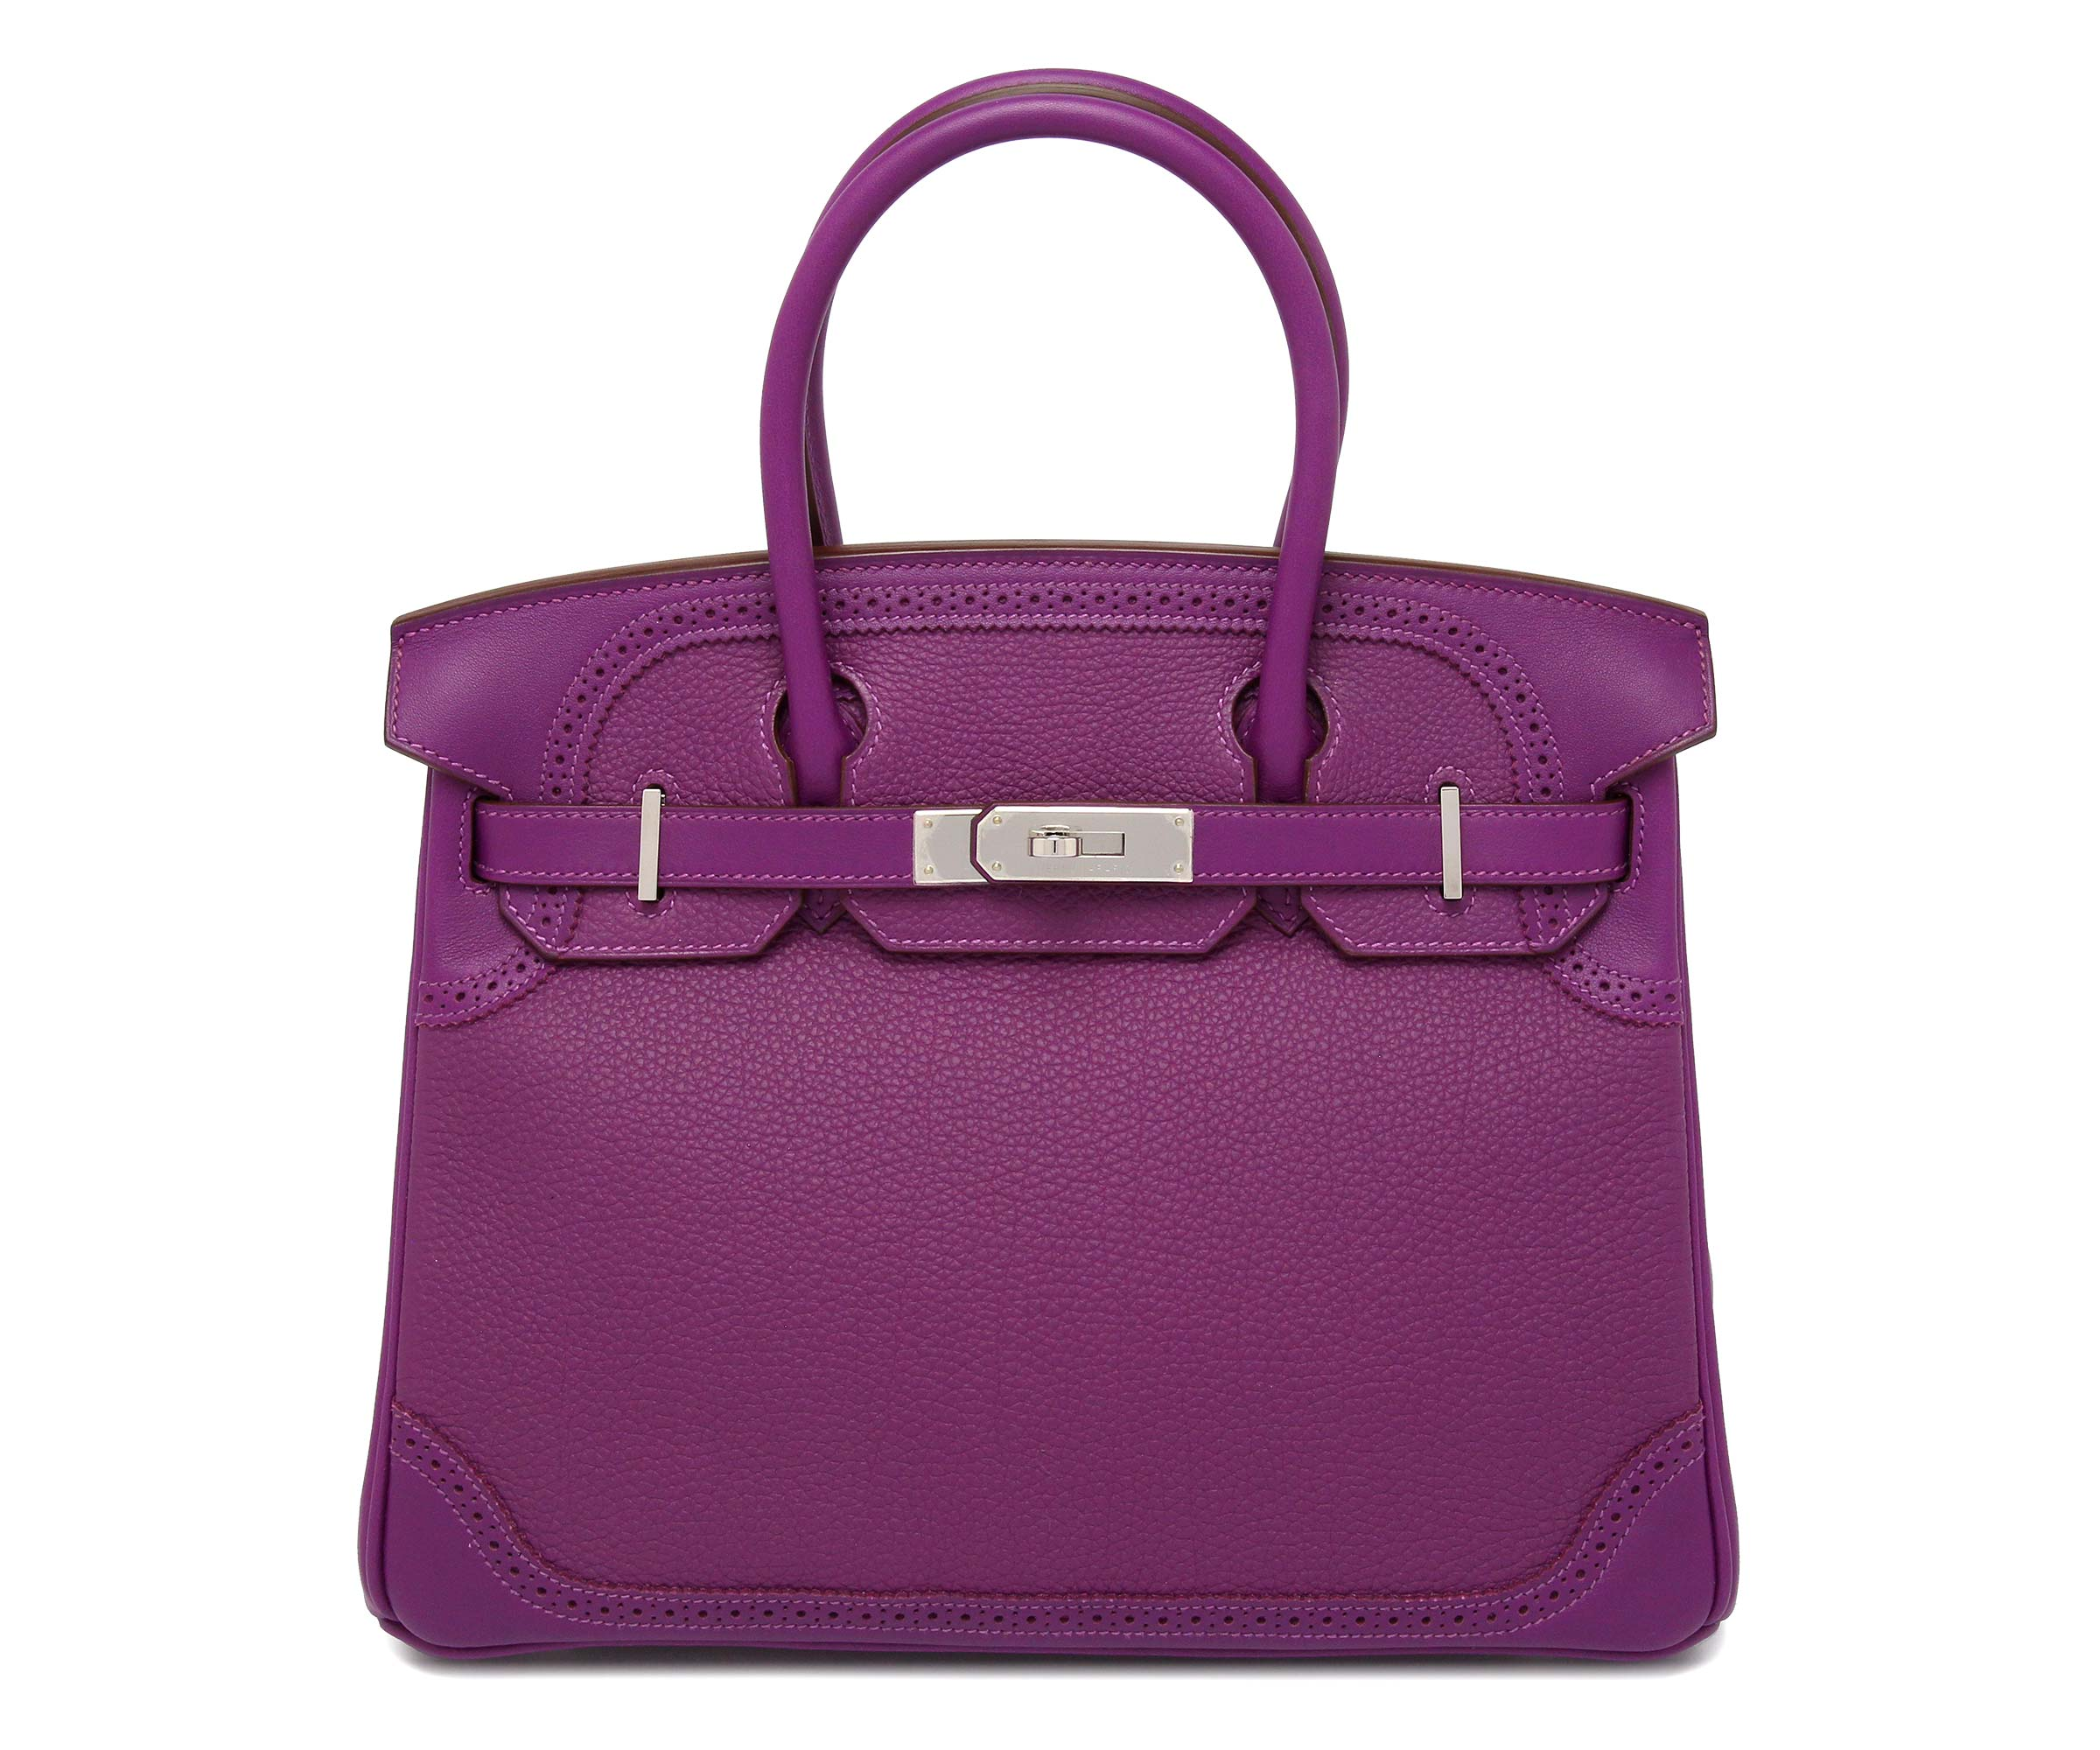 d89a3994f2 Hermes Birkin Bags For Sale